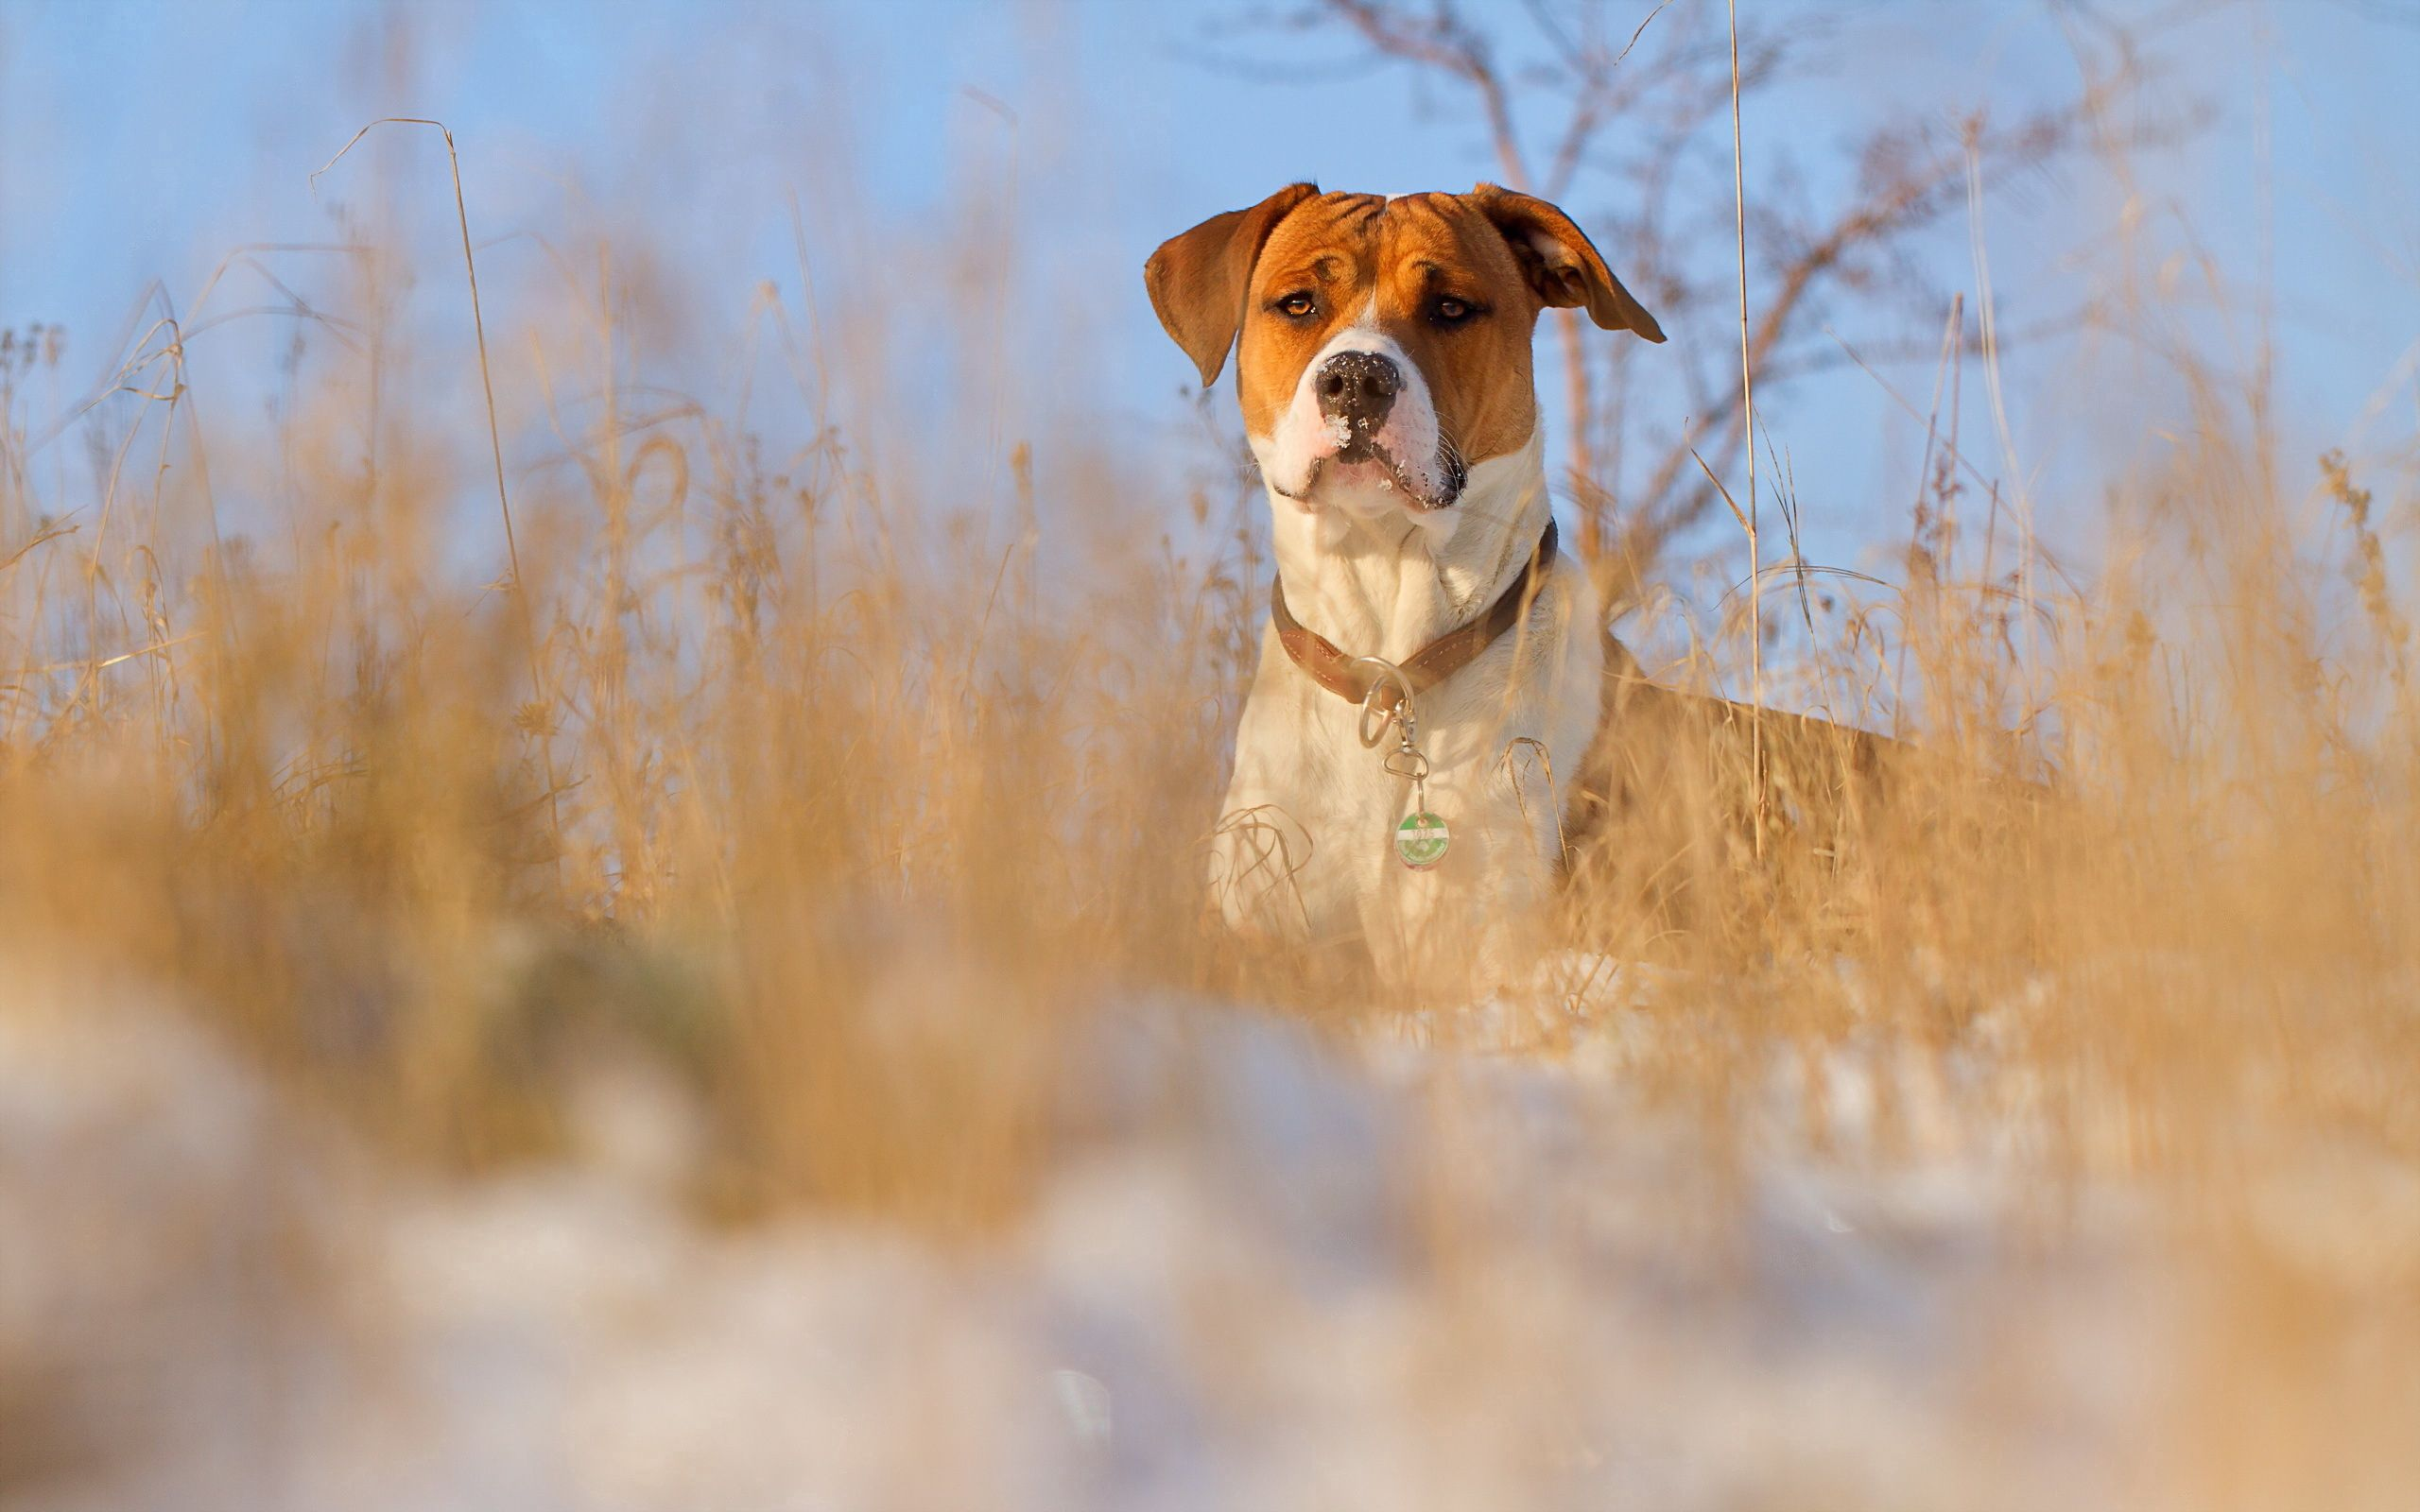 127279 Screensavers and Wallpapers Collar for phone. Download Animals, Grass, Dog, Muzzle, Collar pictures for free